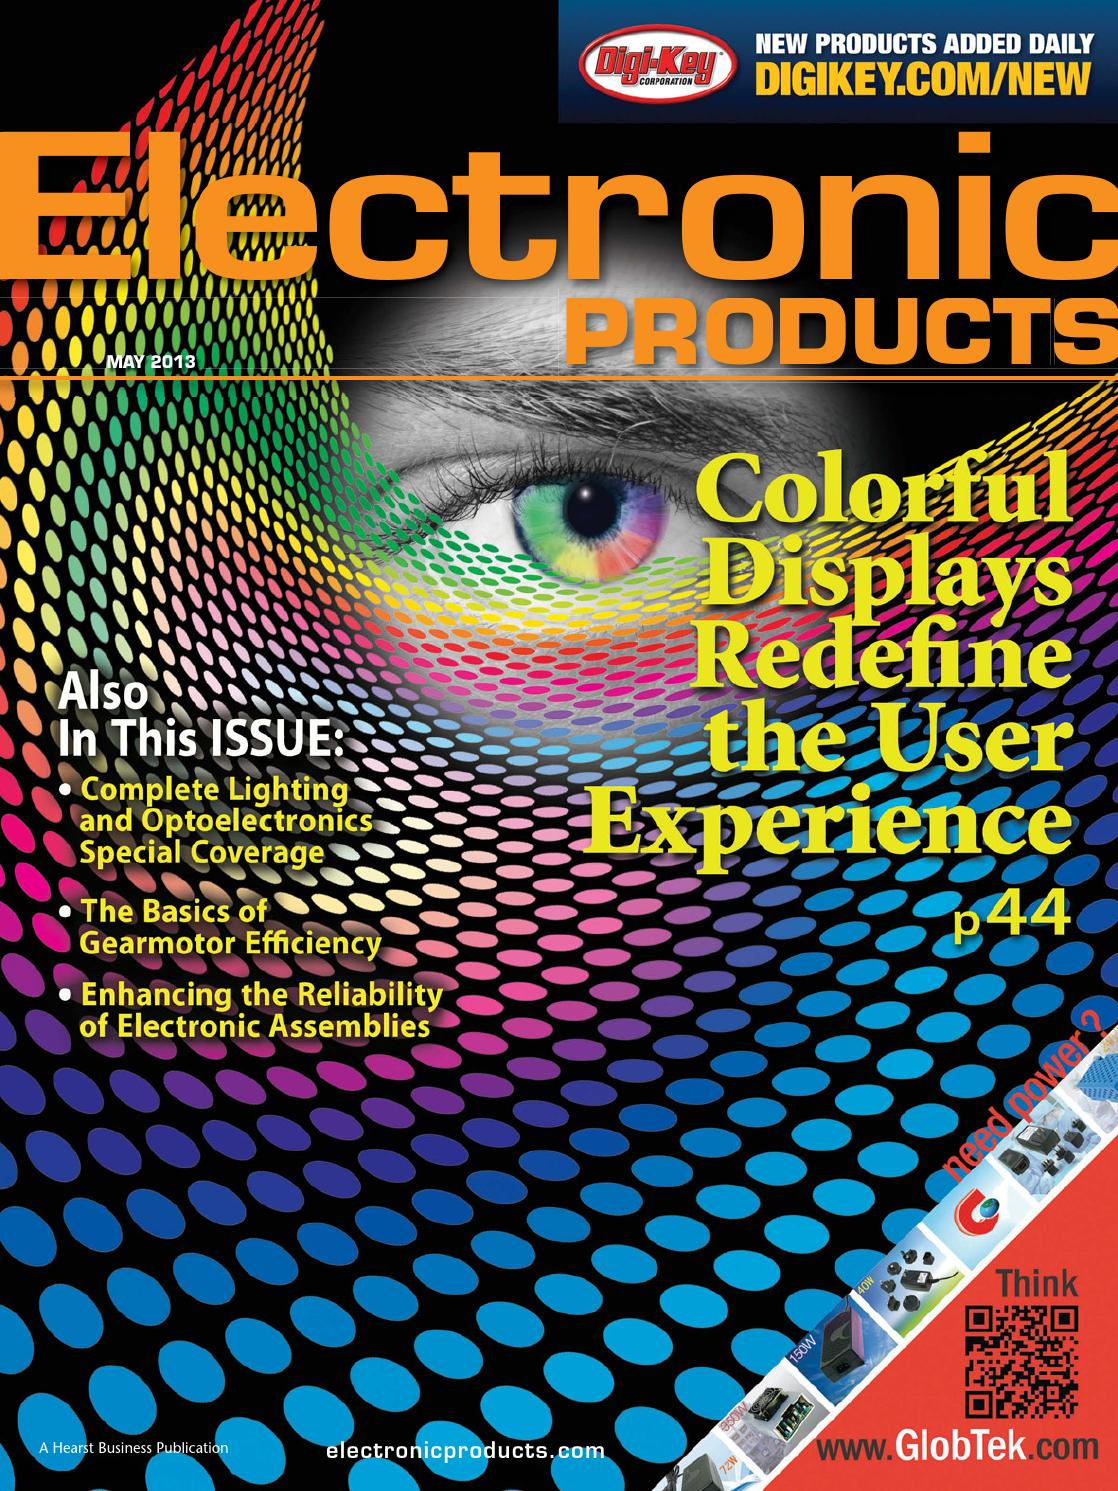 Electronic Products Featuring Zmdi By Issuu Koa Speer Electronics Your Passive Component Partner